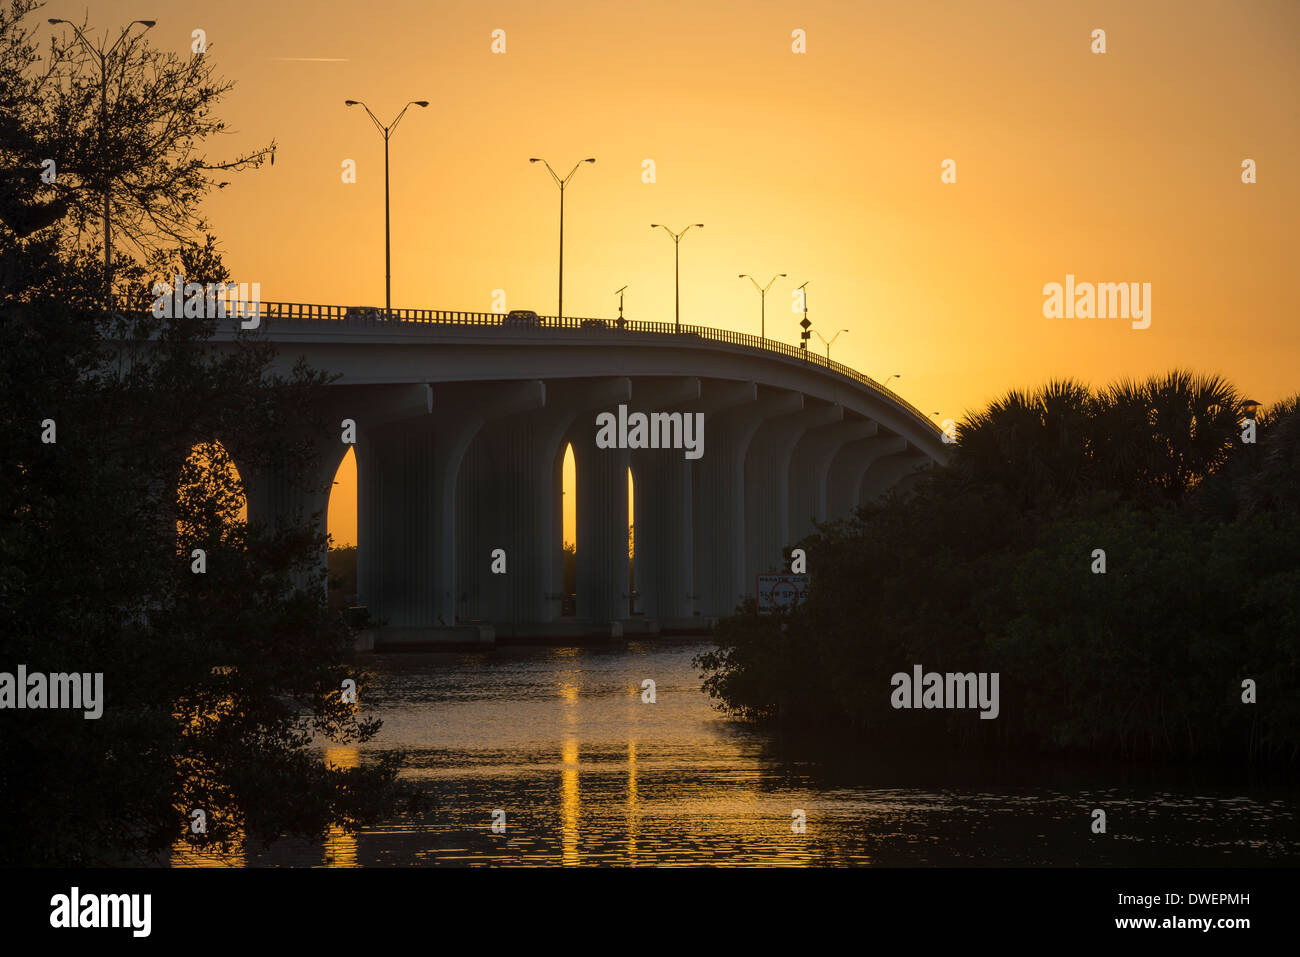 As the sun sets, traffic heads across the bridge and  over the Indian River in Vero Beach, Florida. - Stock Image